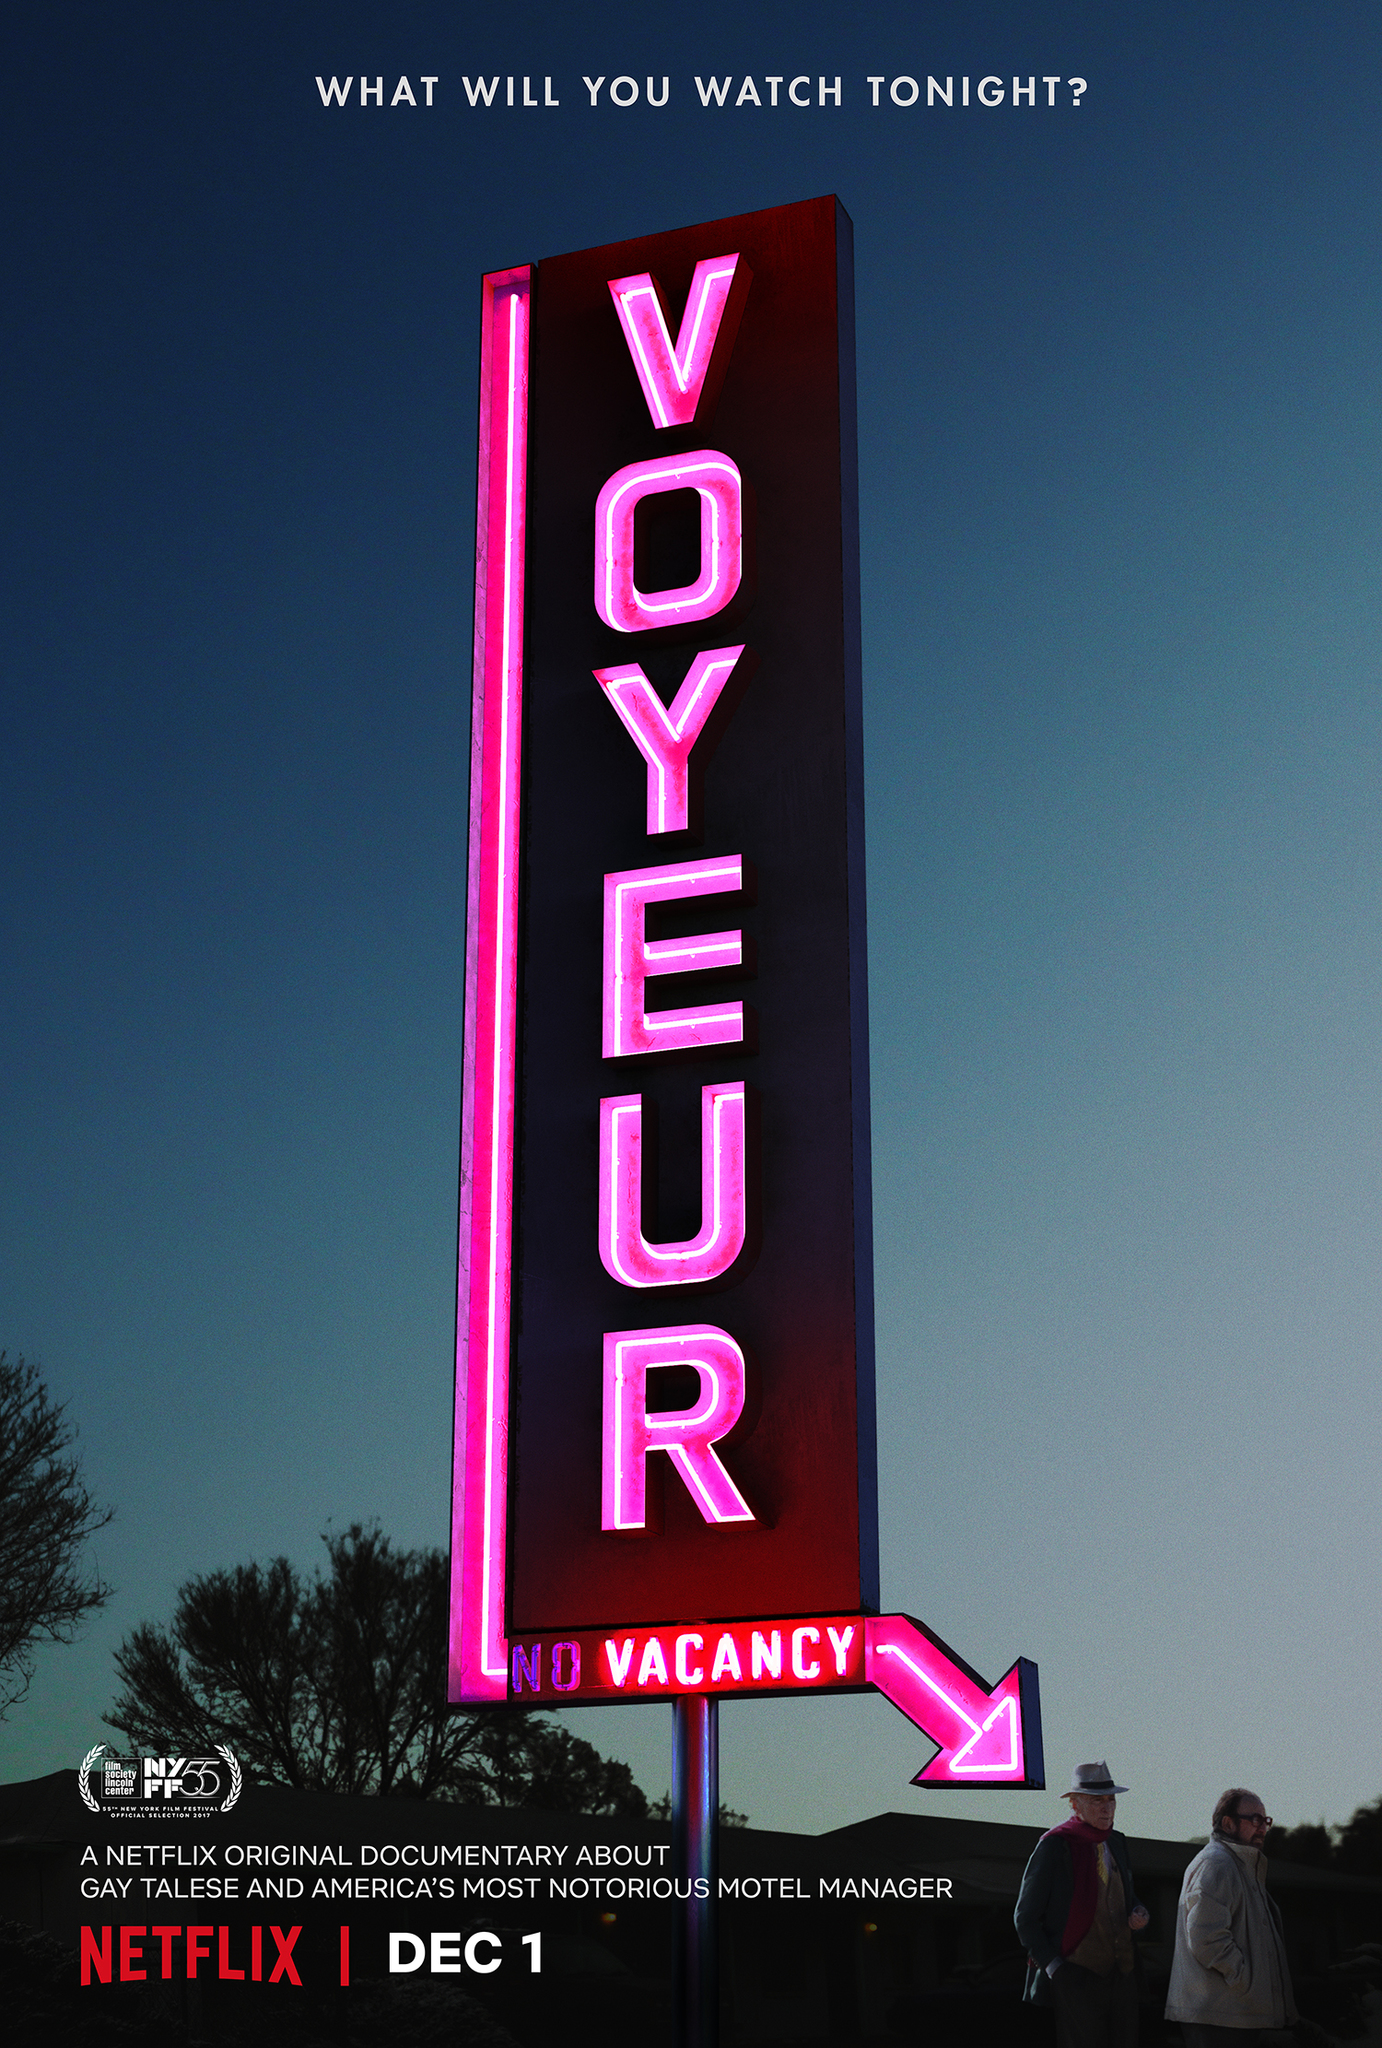 Voyeur video trailers